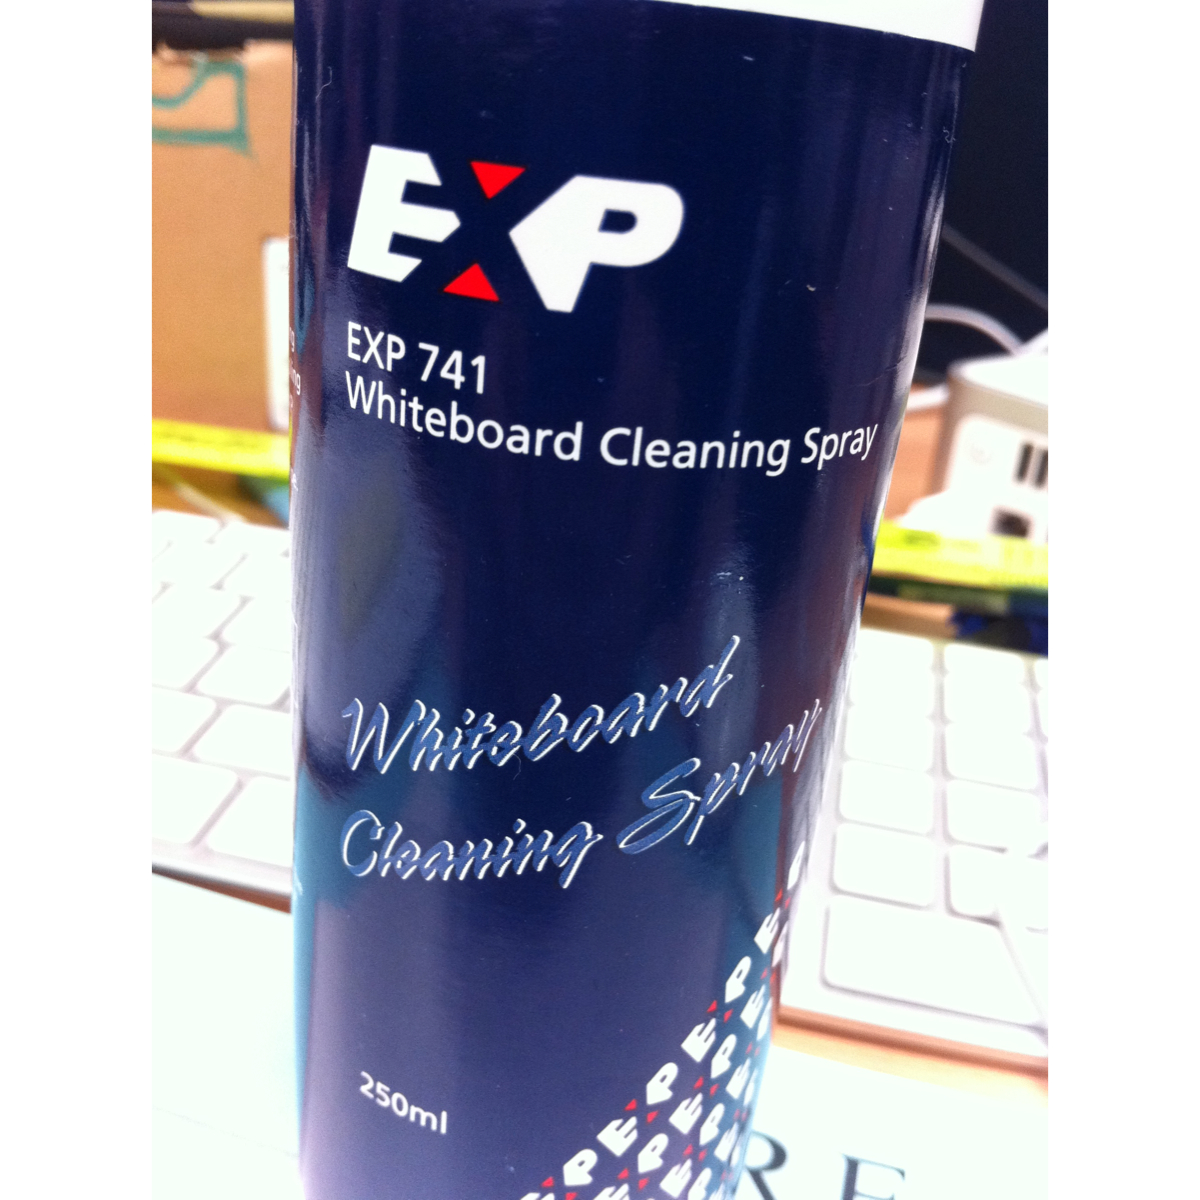 Whiteboard cleaning spray